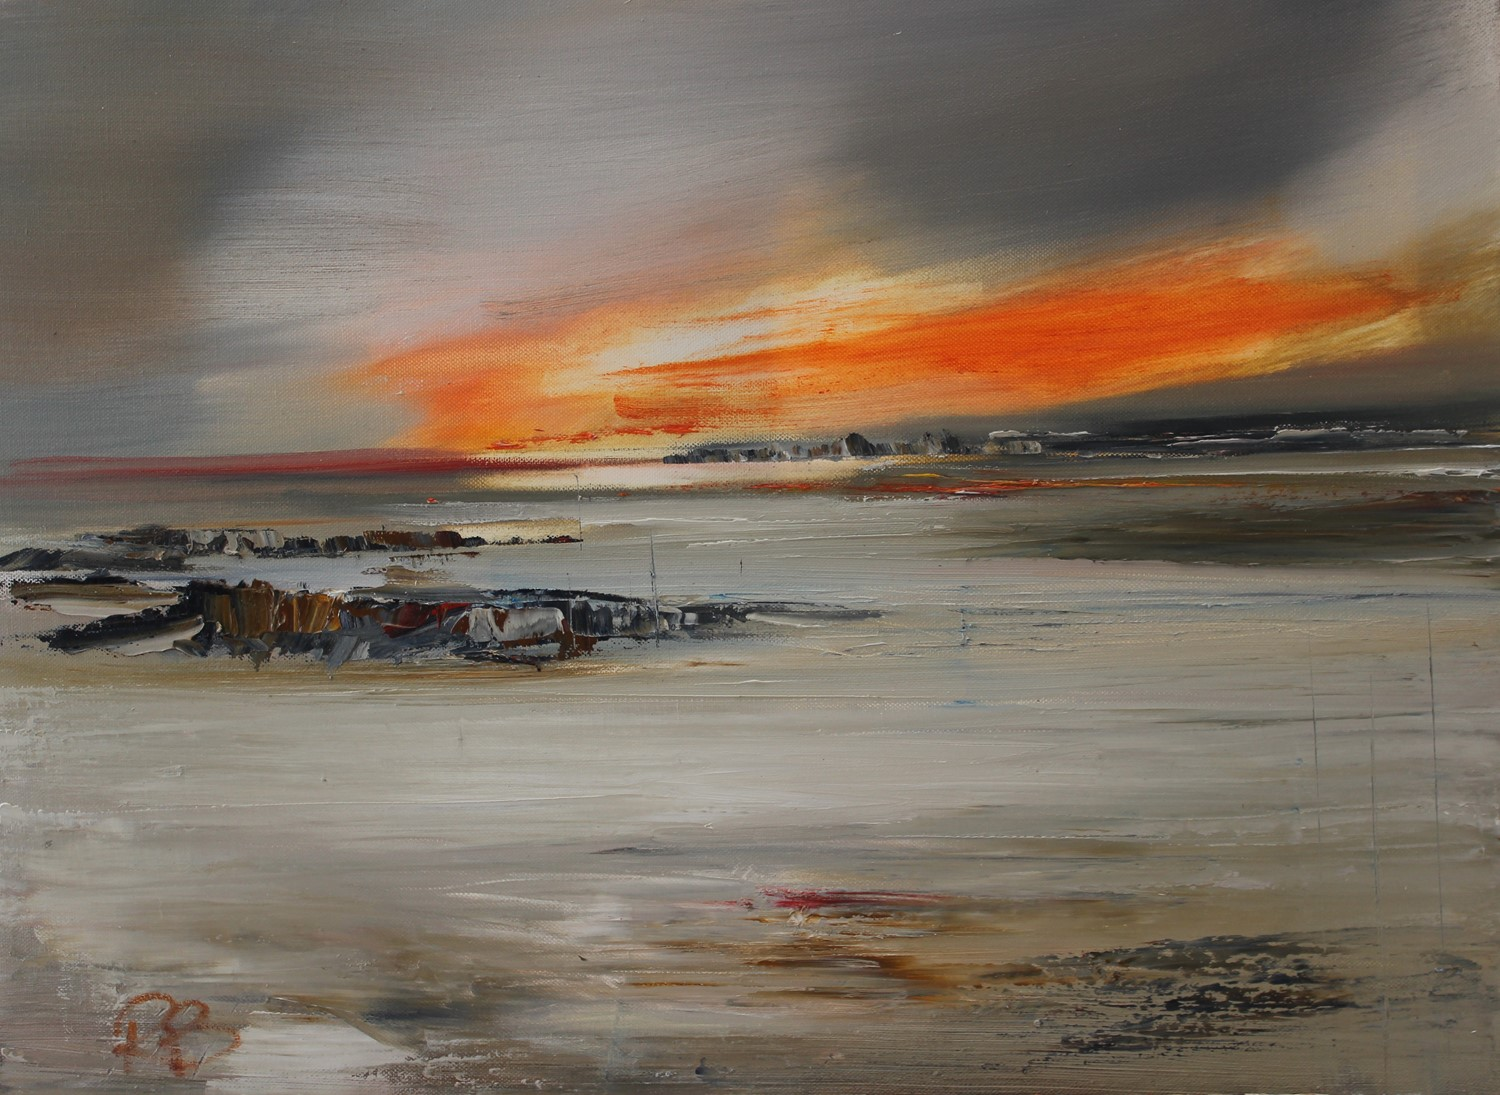 'Time and Tide' by artist Rosanne Barr